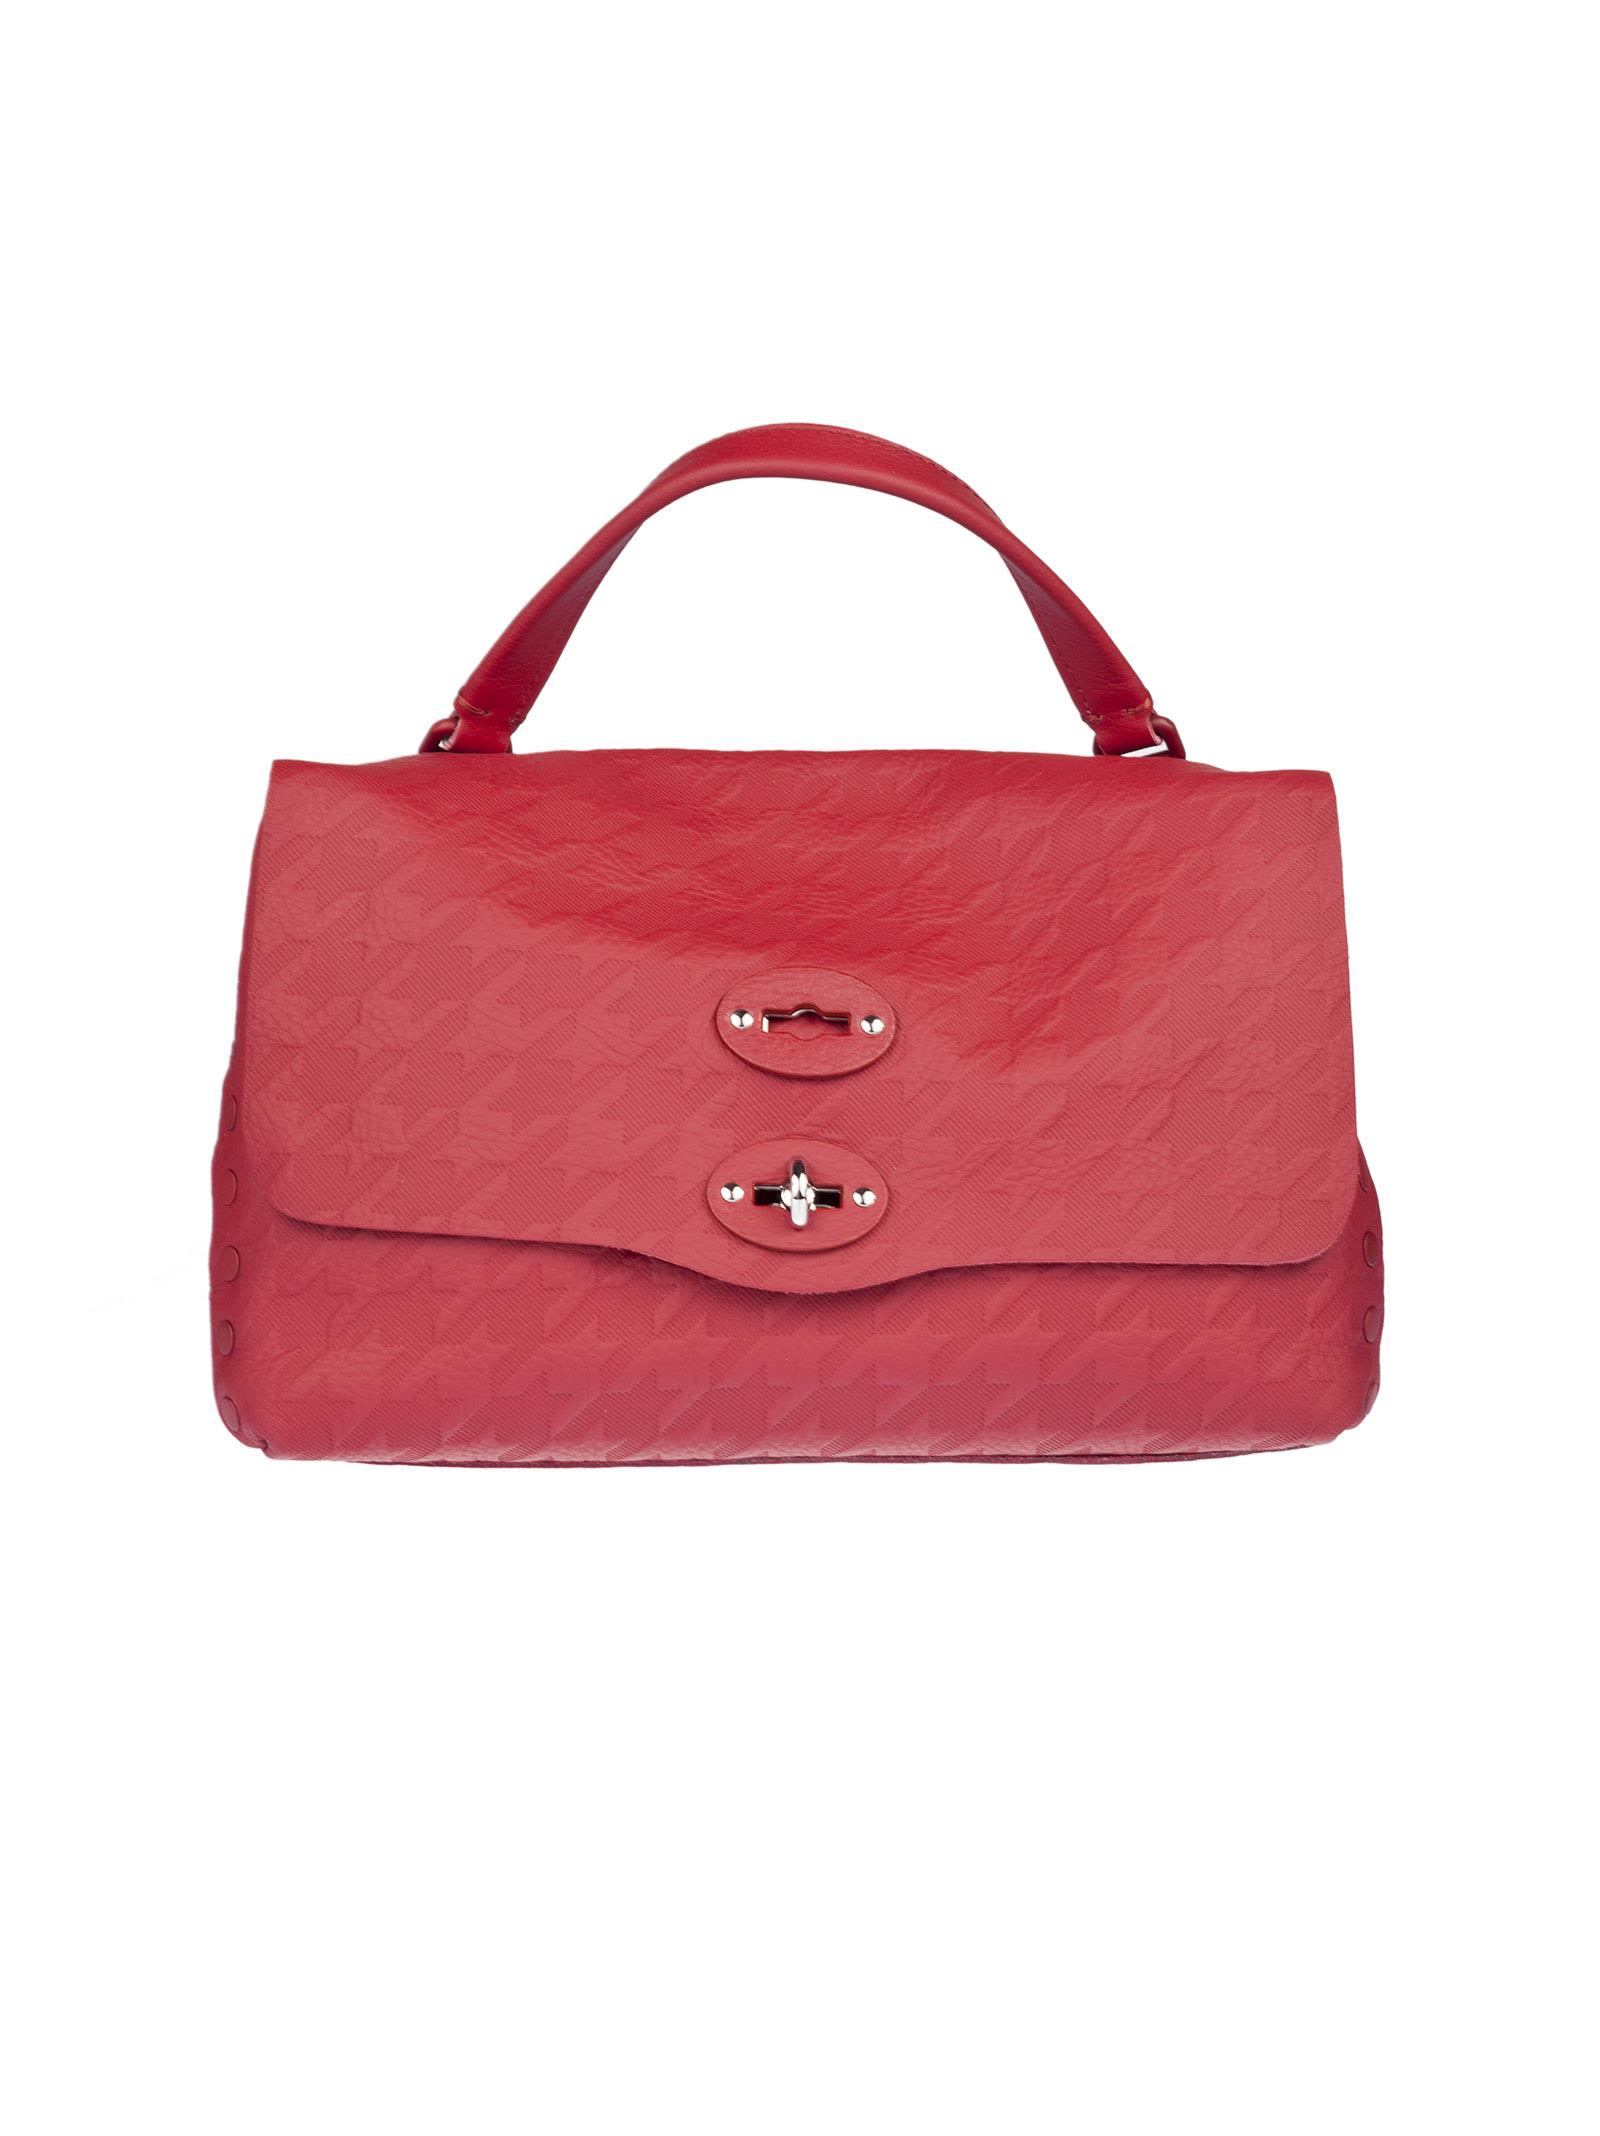 Zanellato Postina S Shoulder Bag